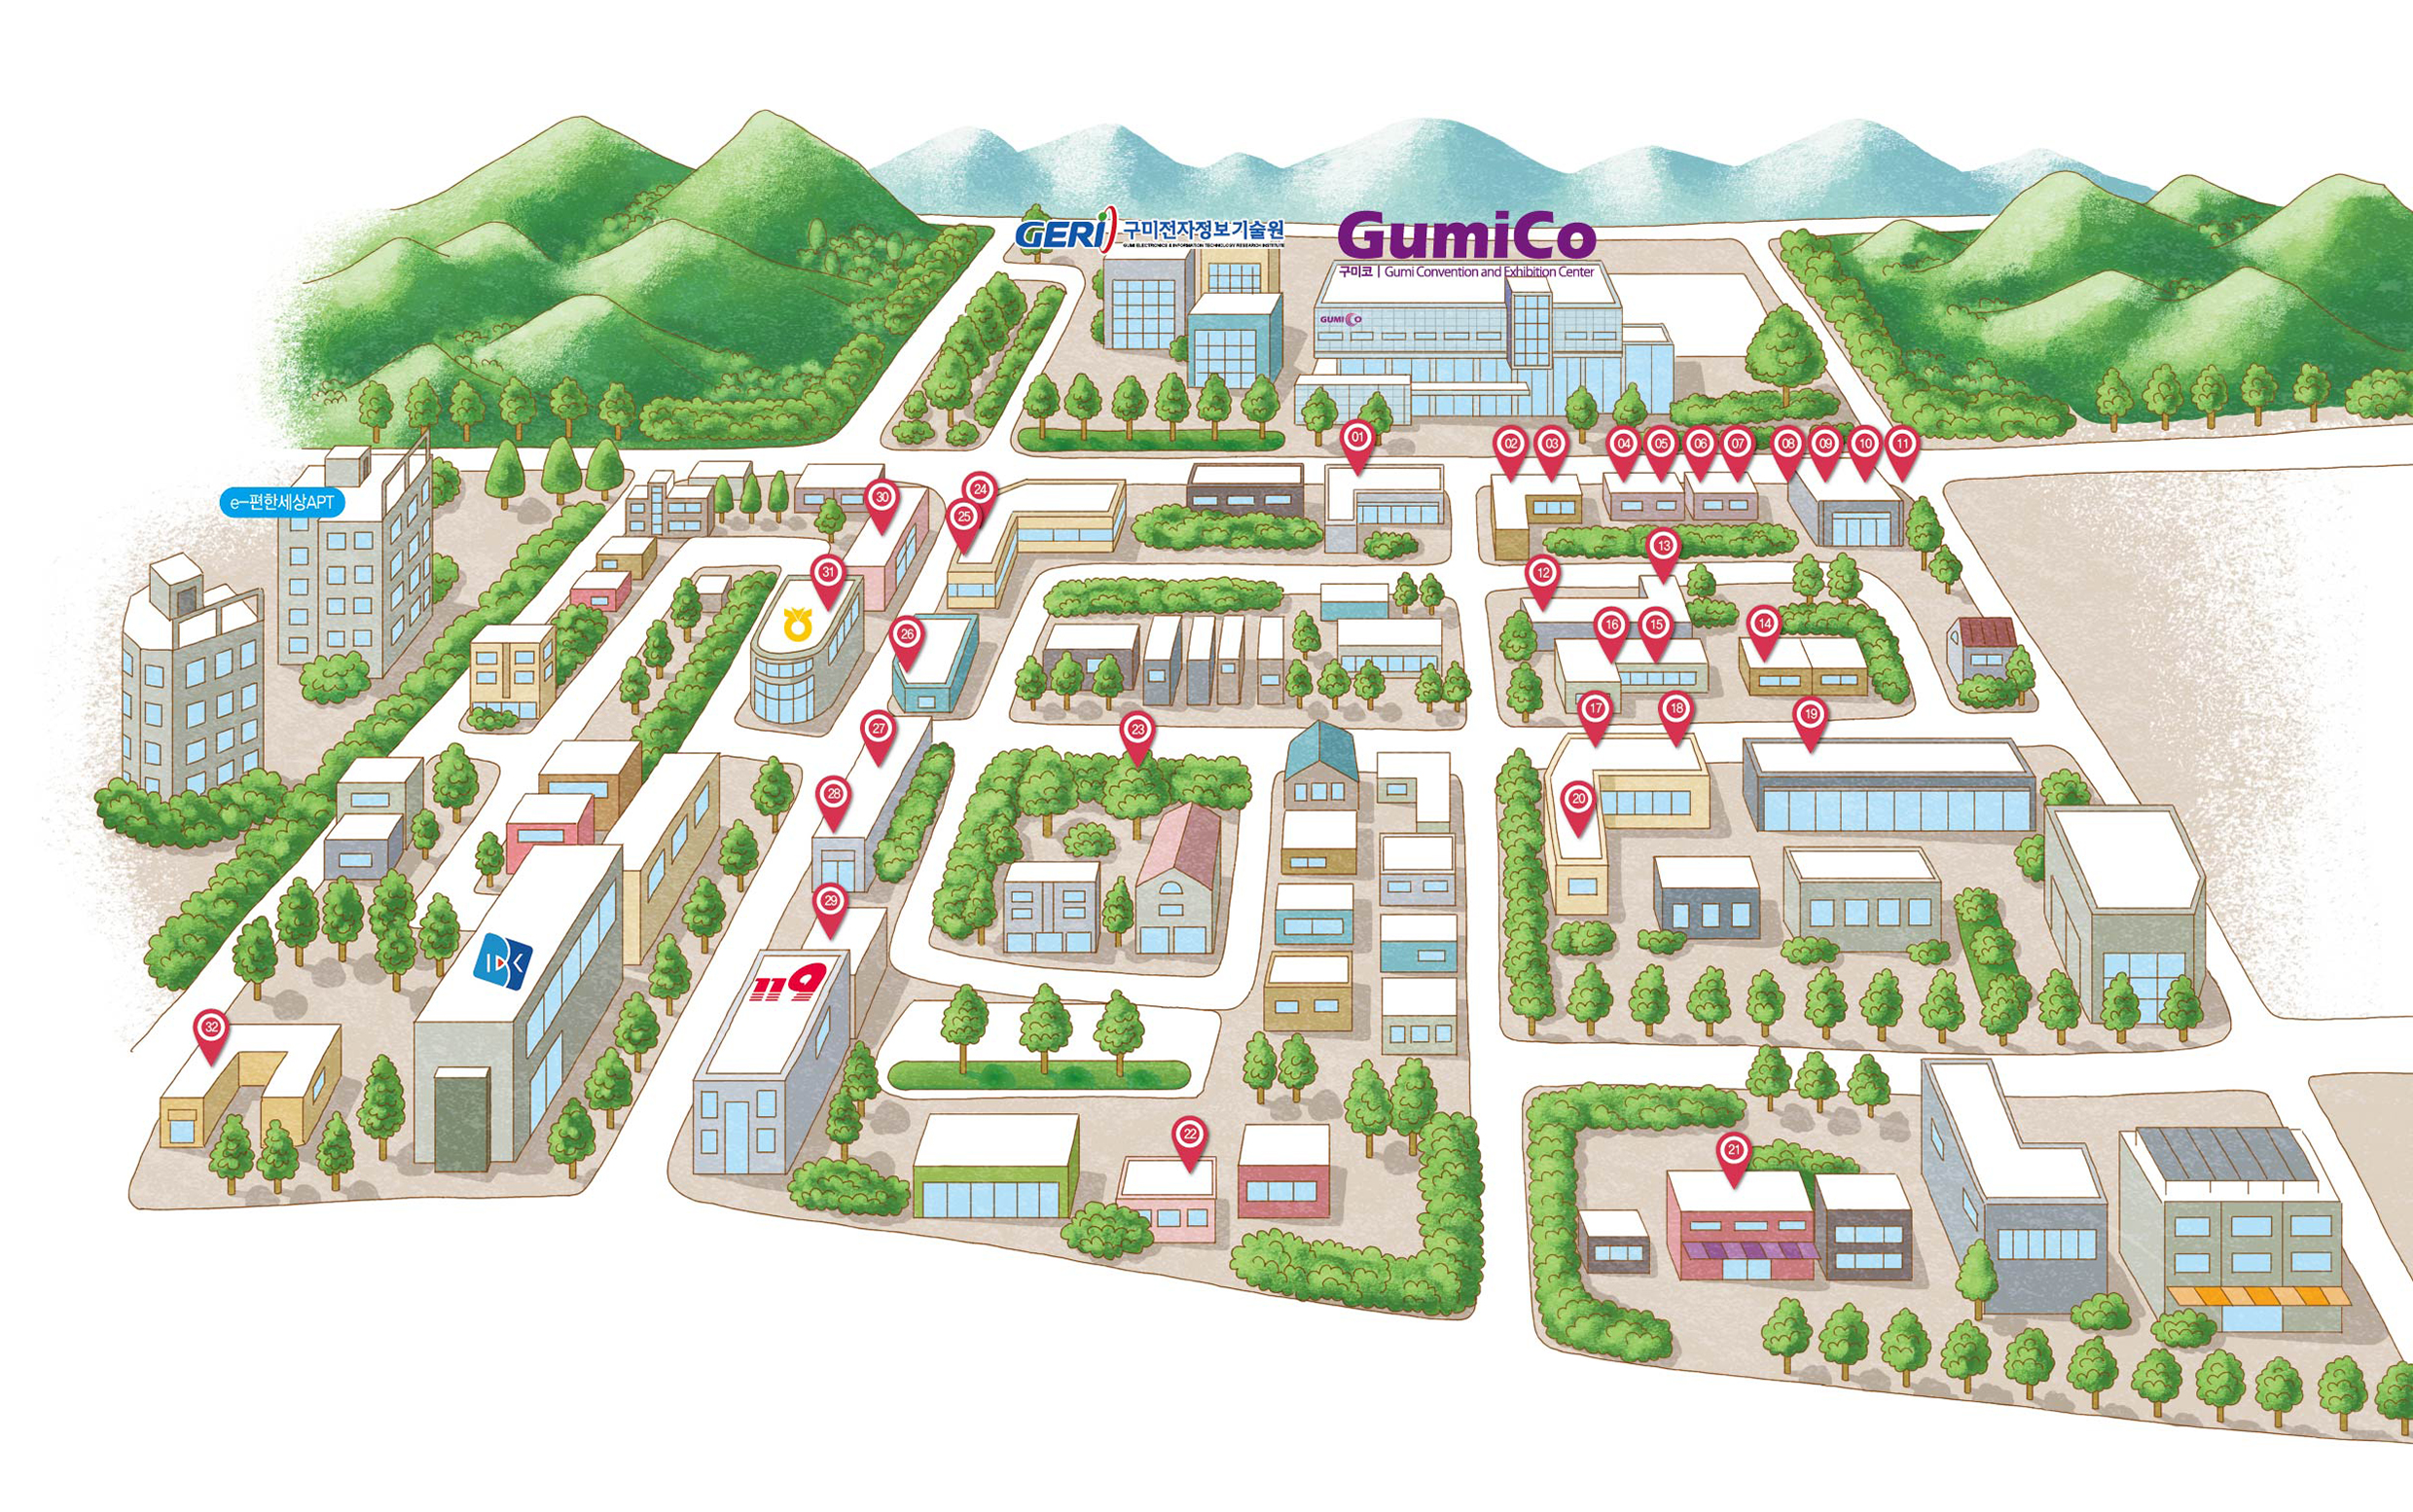 GUMICO / Visitor Information / Famous Restaurants